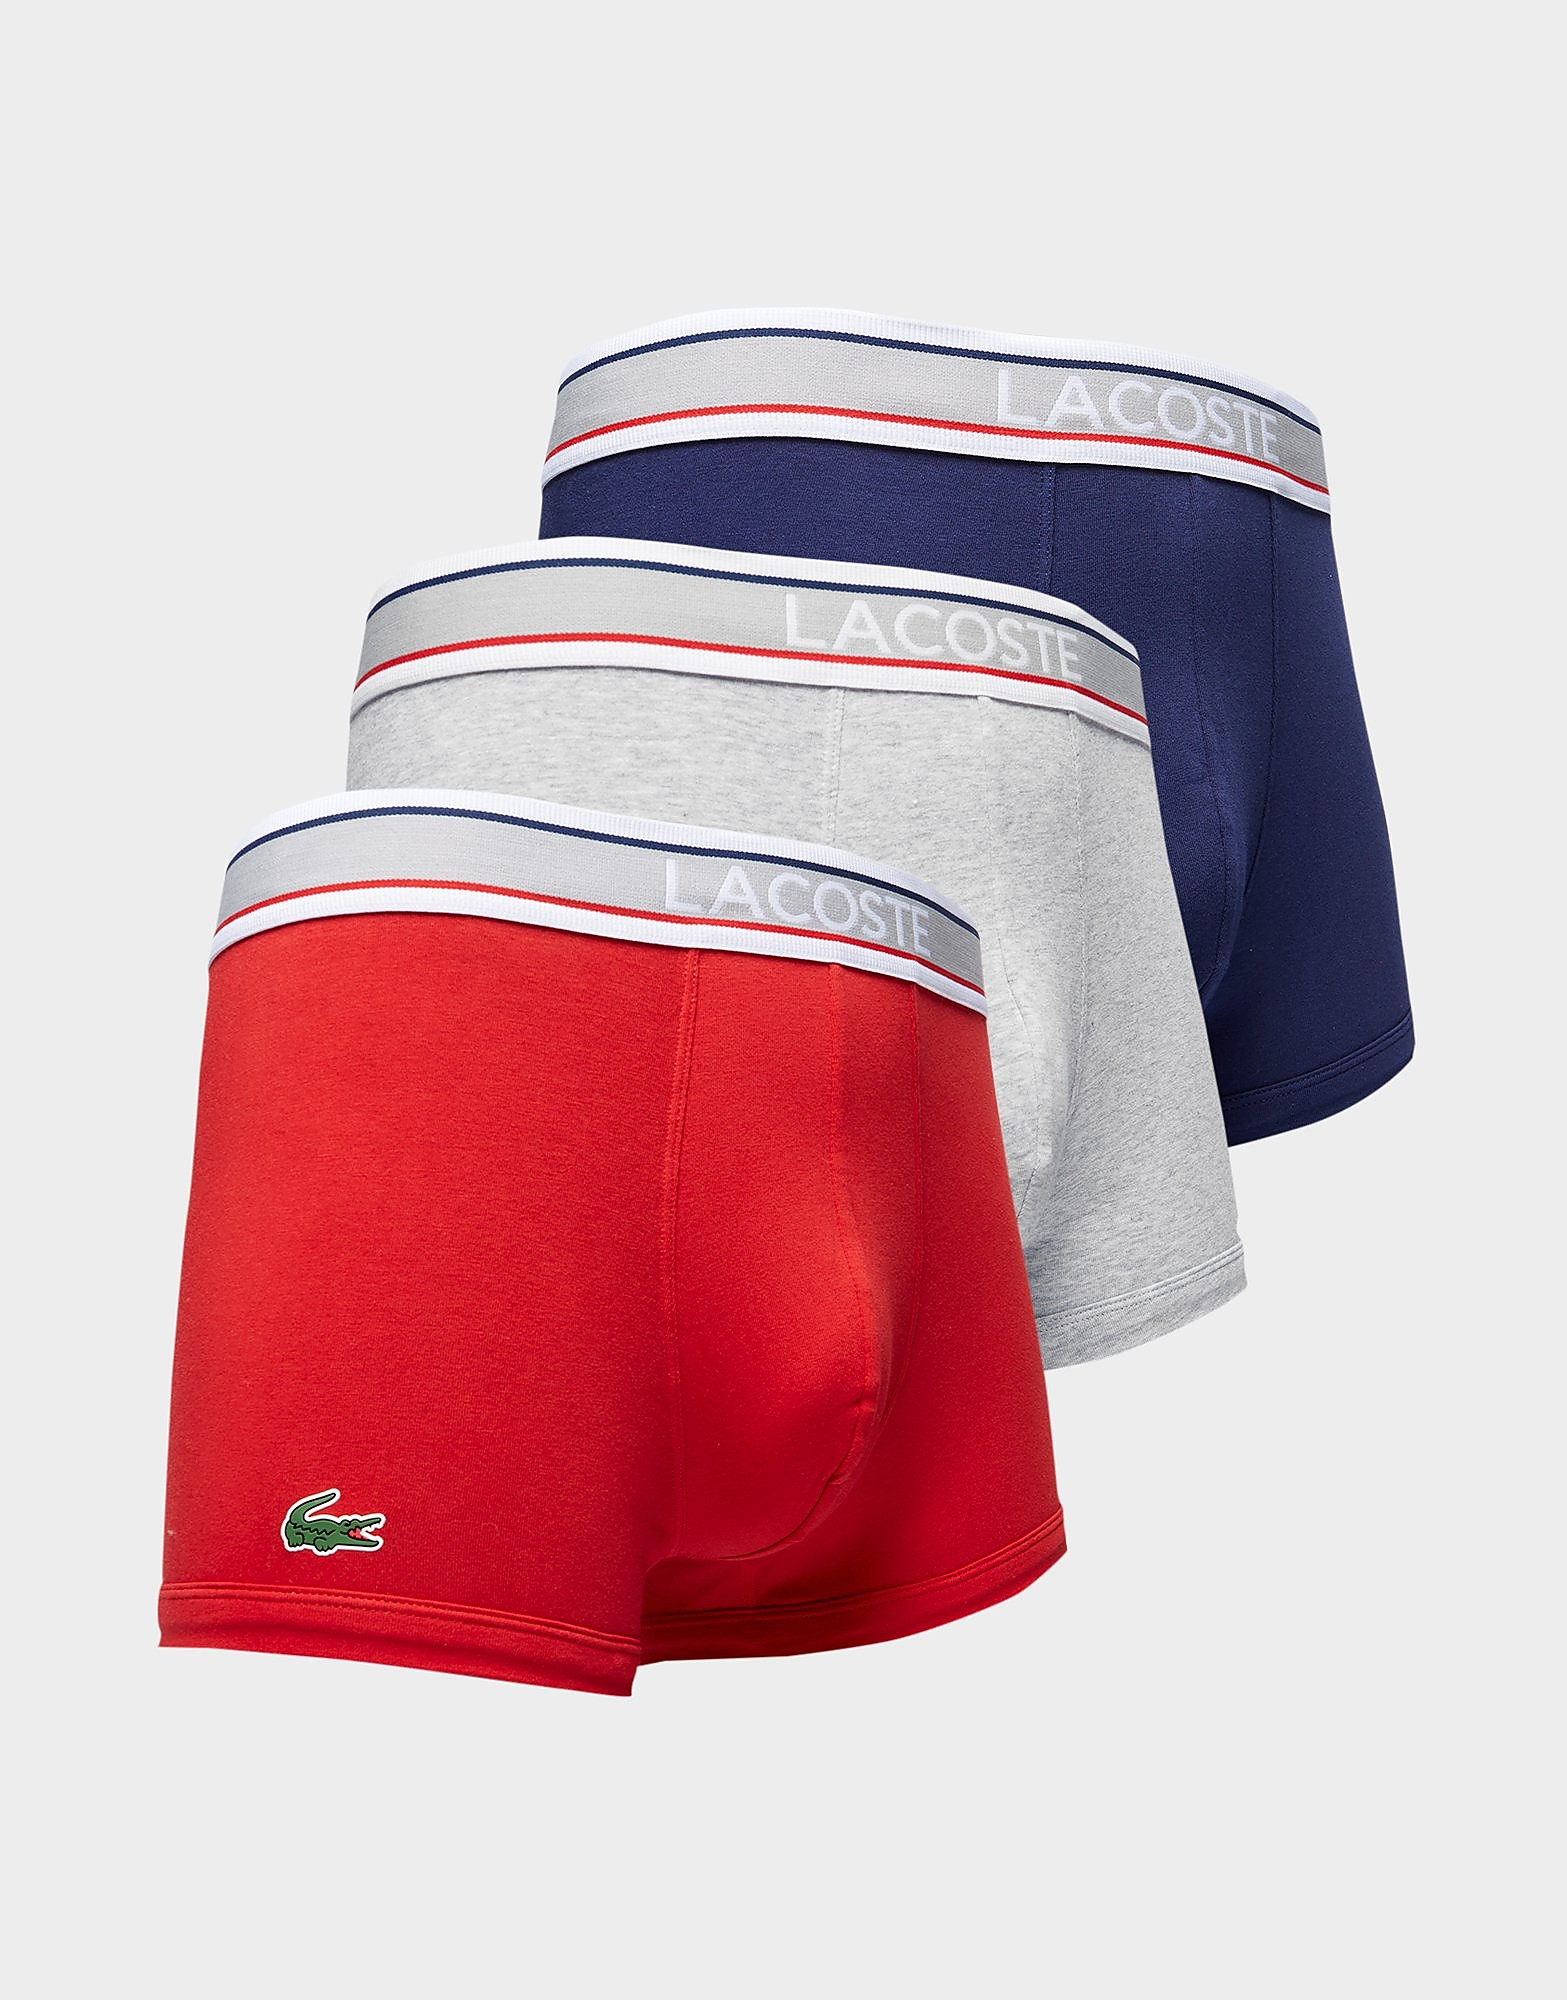 Lacoste Pack 3 Boxers Trunks